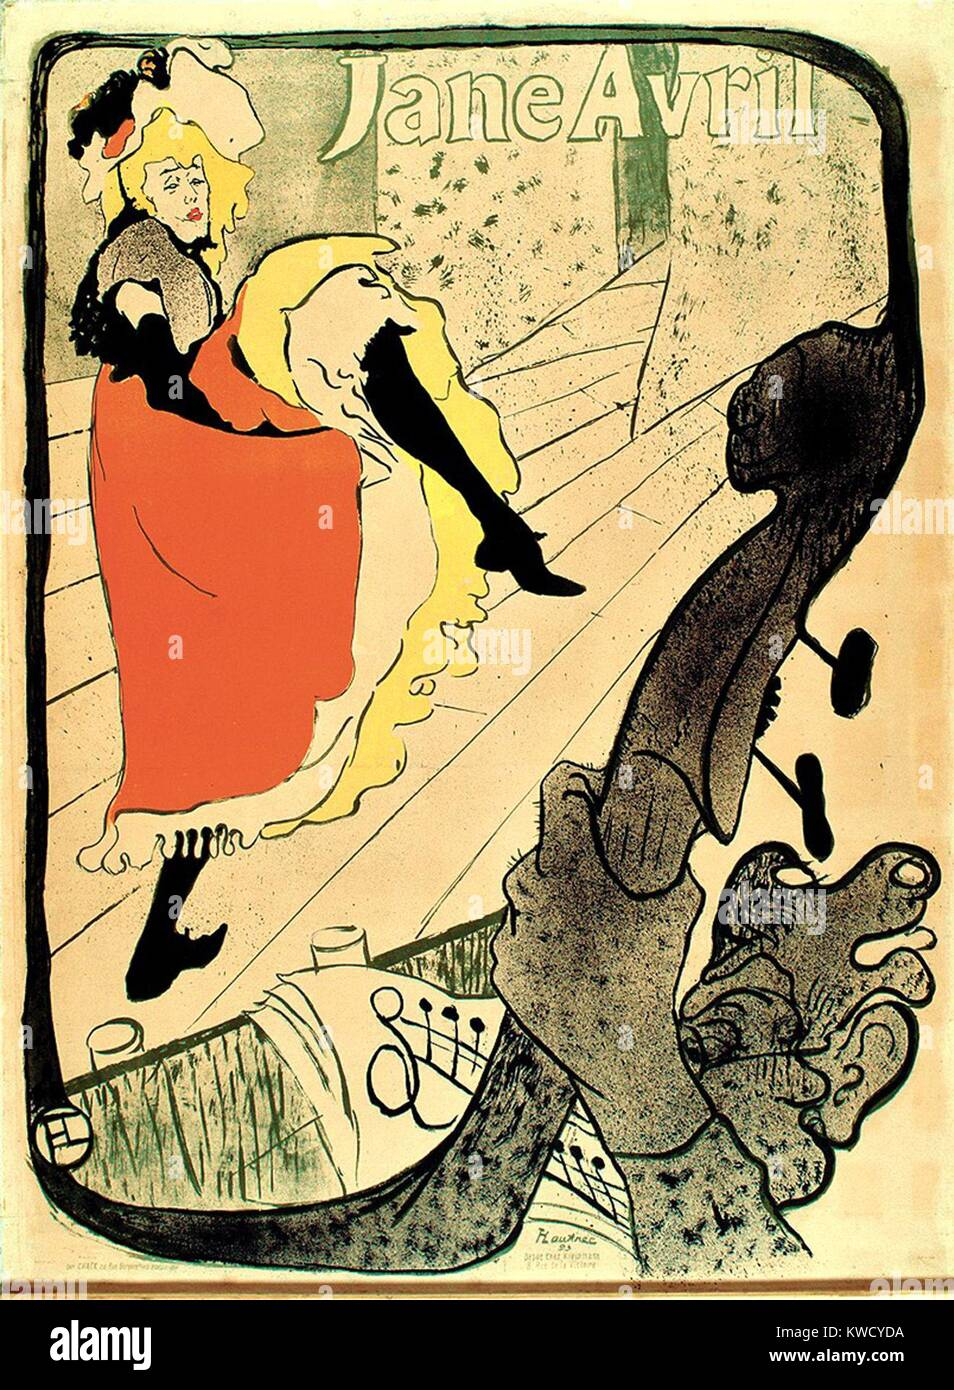 Jane Avril, by Henri de Toulouse-Lautrec, 1893, French Post-Impressionist print, lithograph. Avril, friend of the - Stock Image